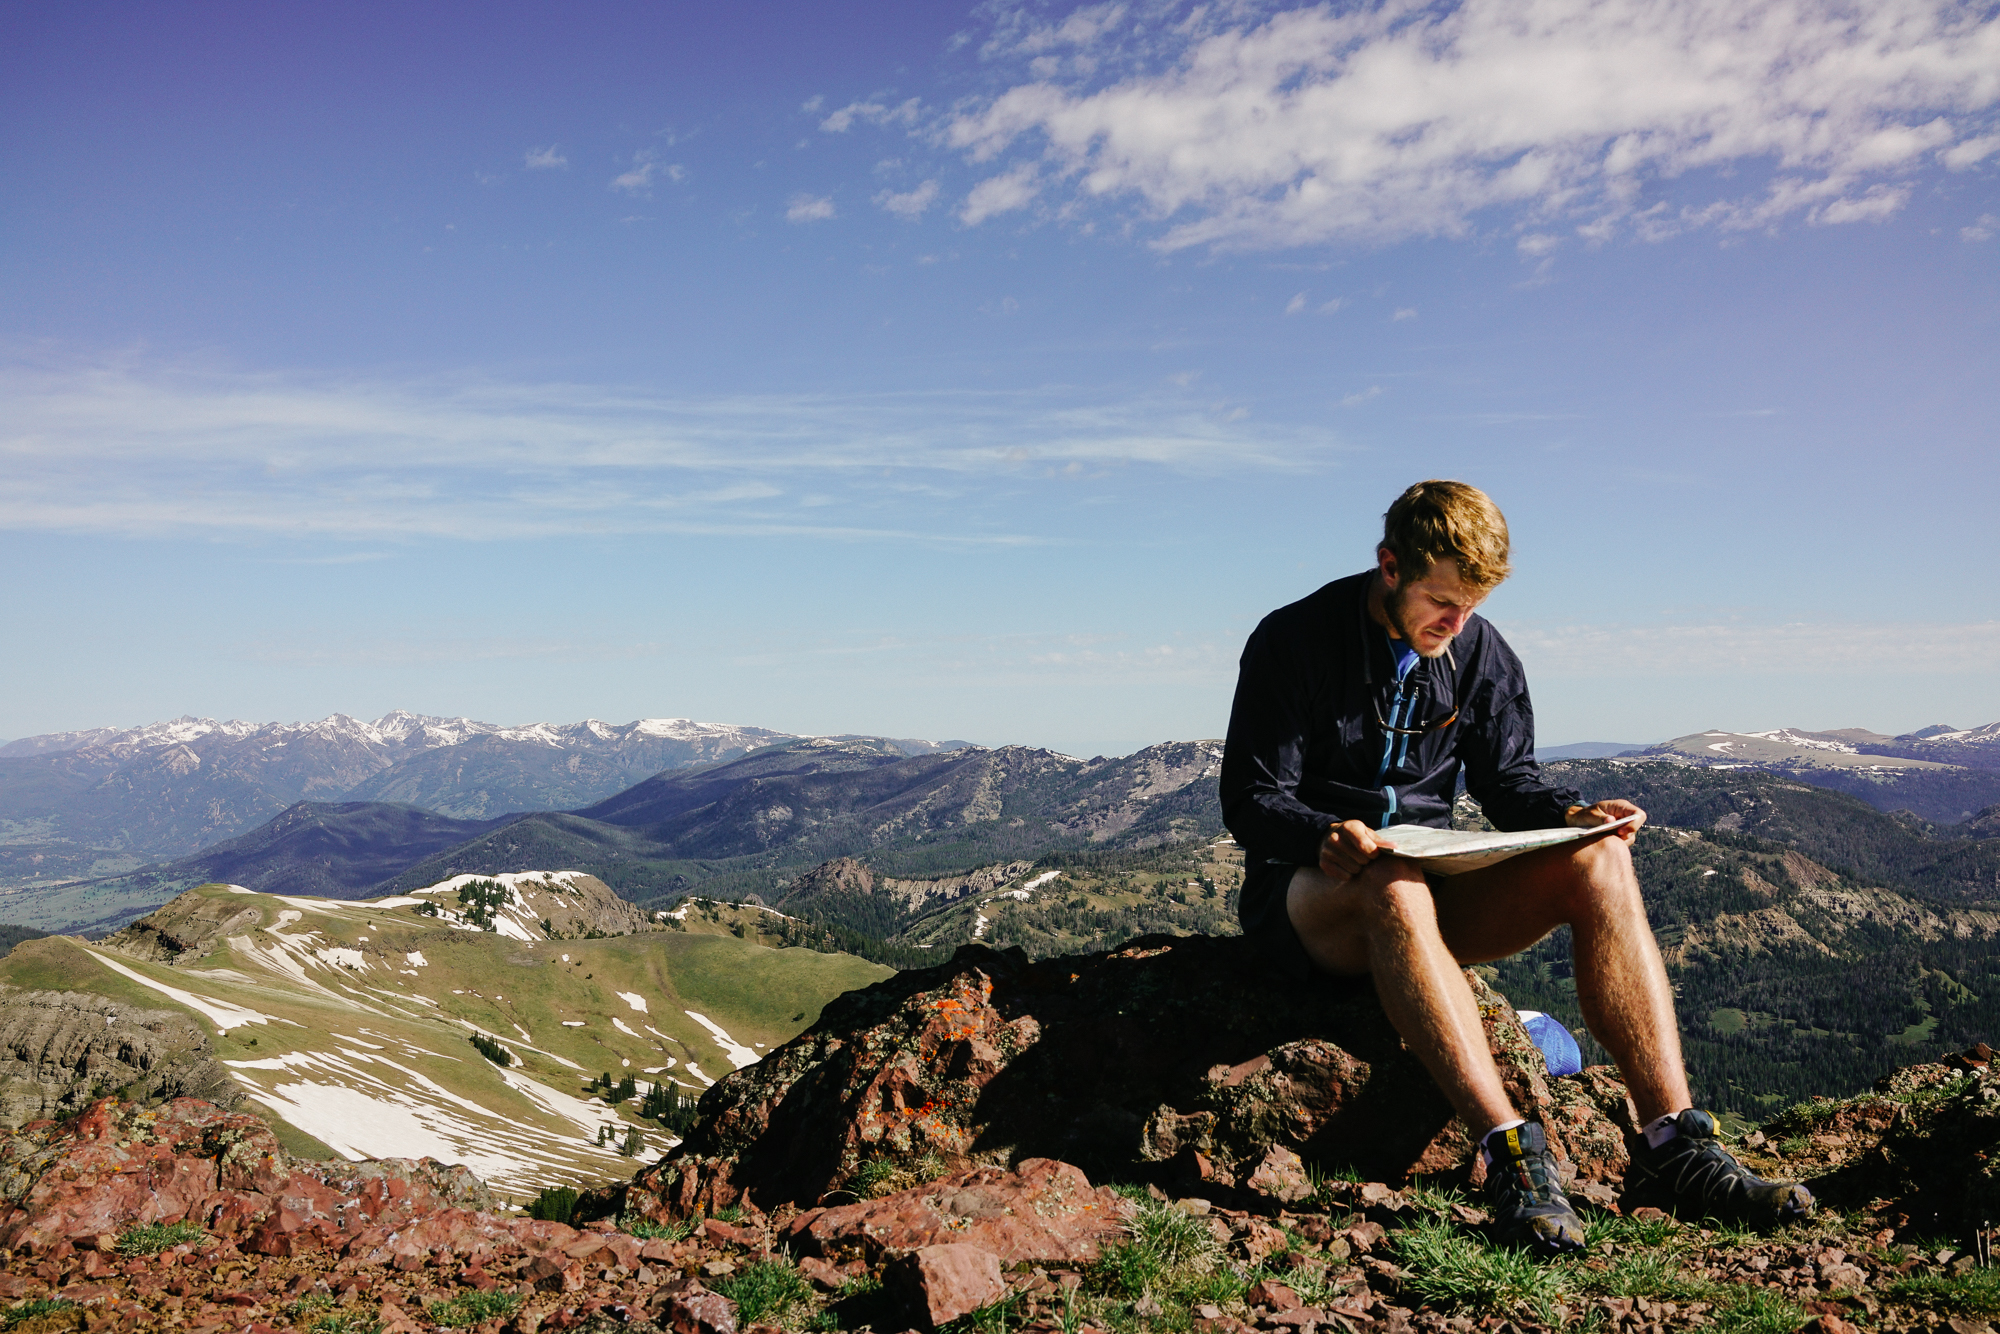 On a mountain ridgeline in the Custer Gallatin National Forest in Montana. (Photo Louise Johns.)